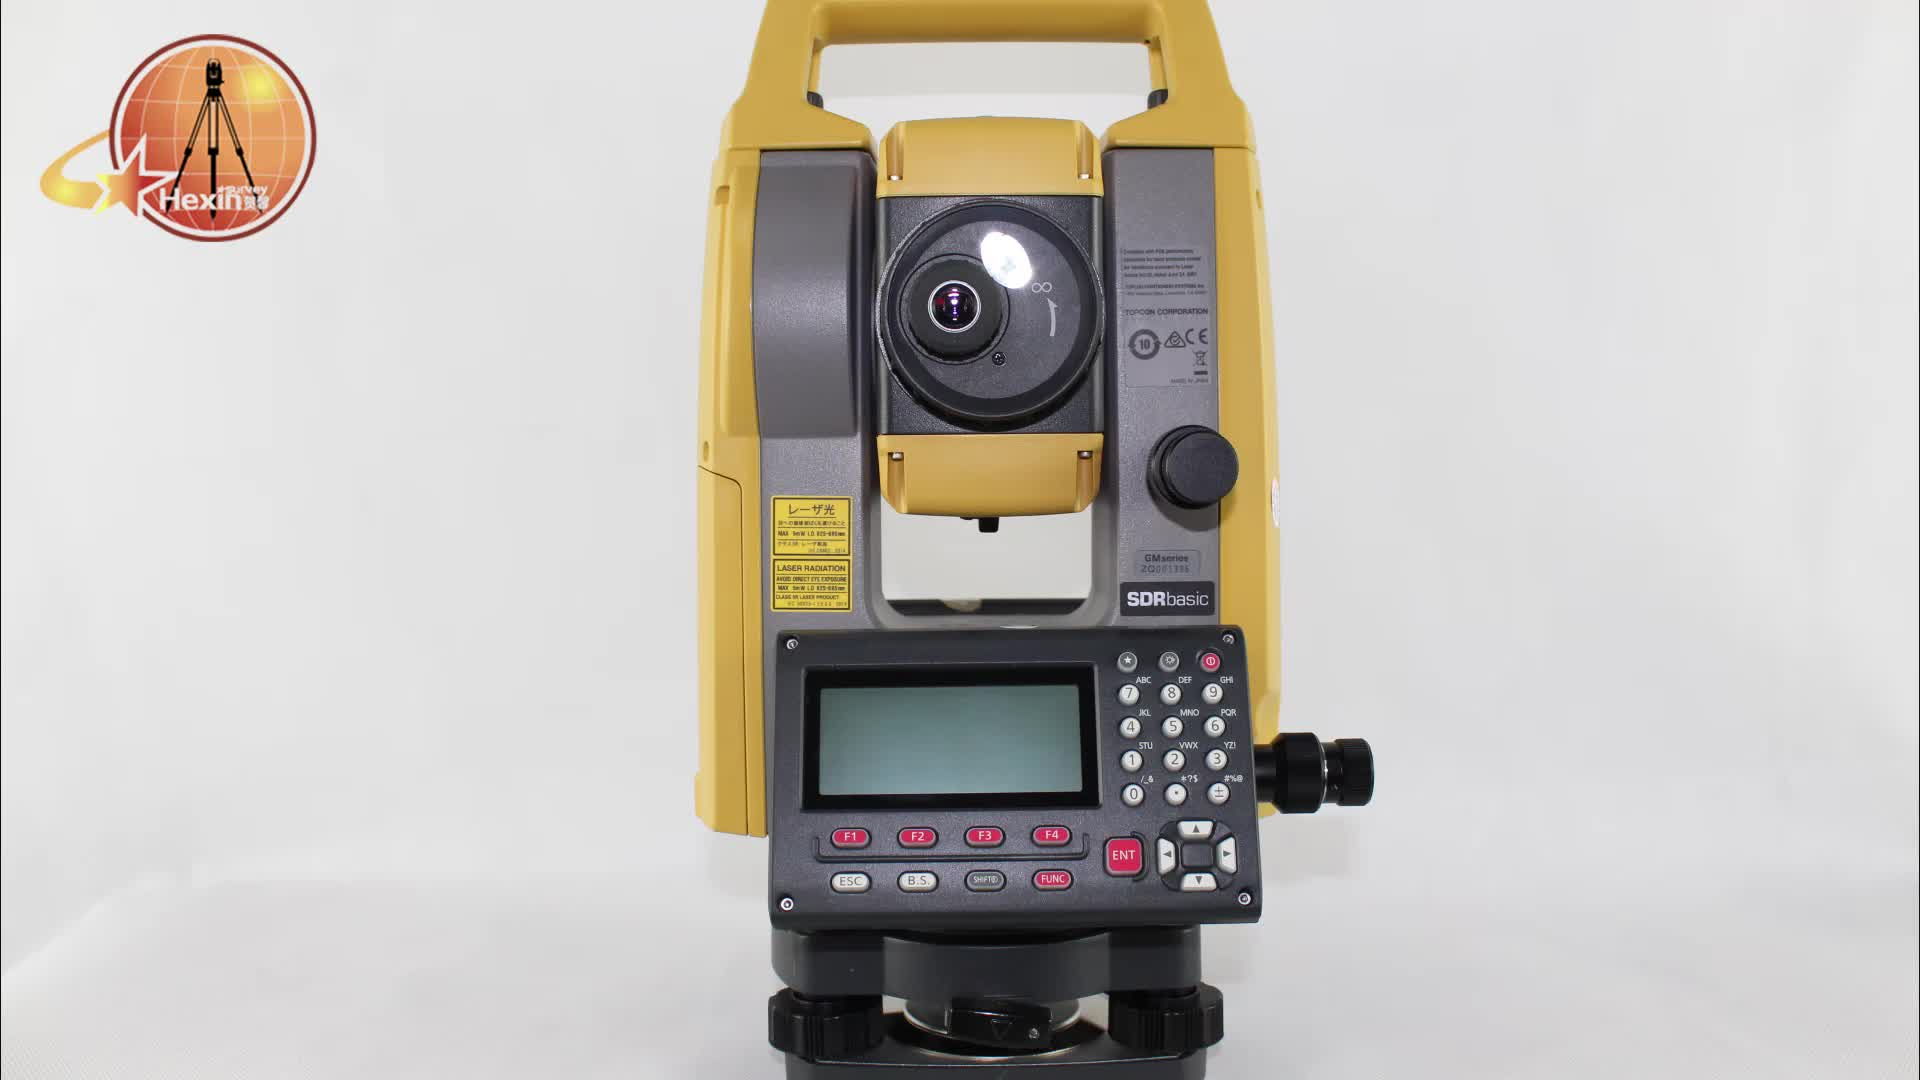 High quality Topcon  GM - 105 total station prism pole with Bright Illumination Key for Nighttime Work